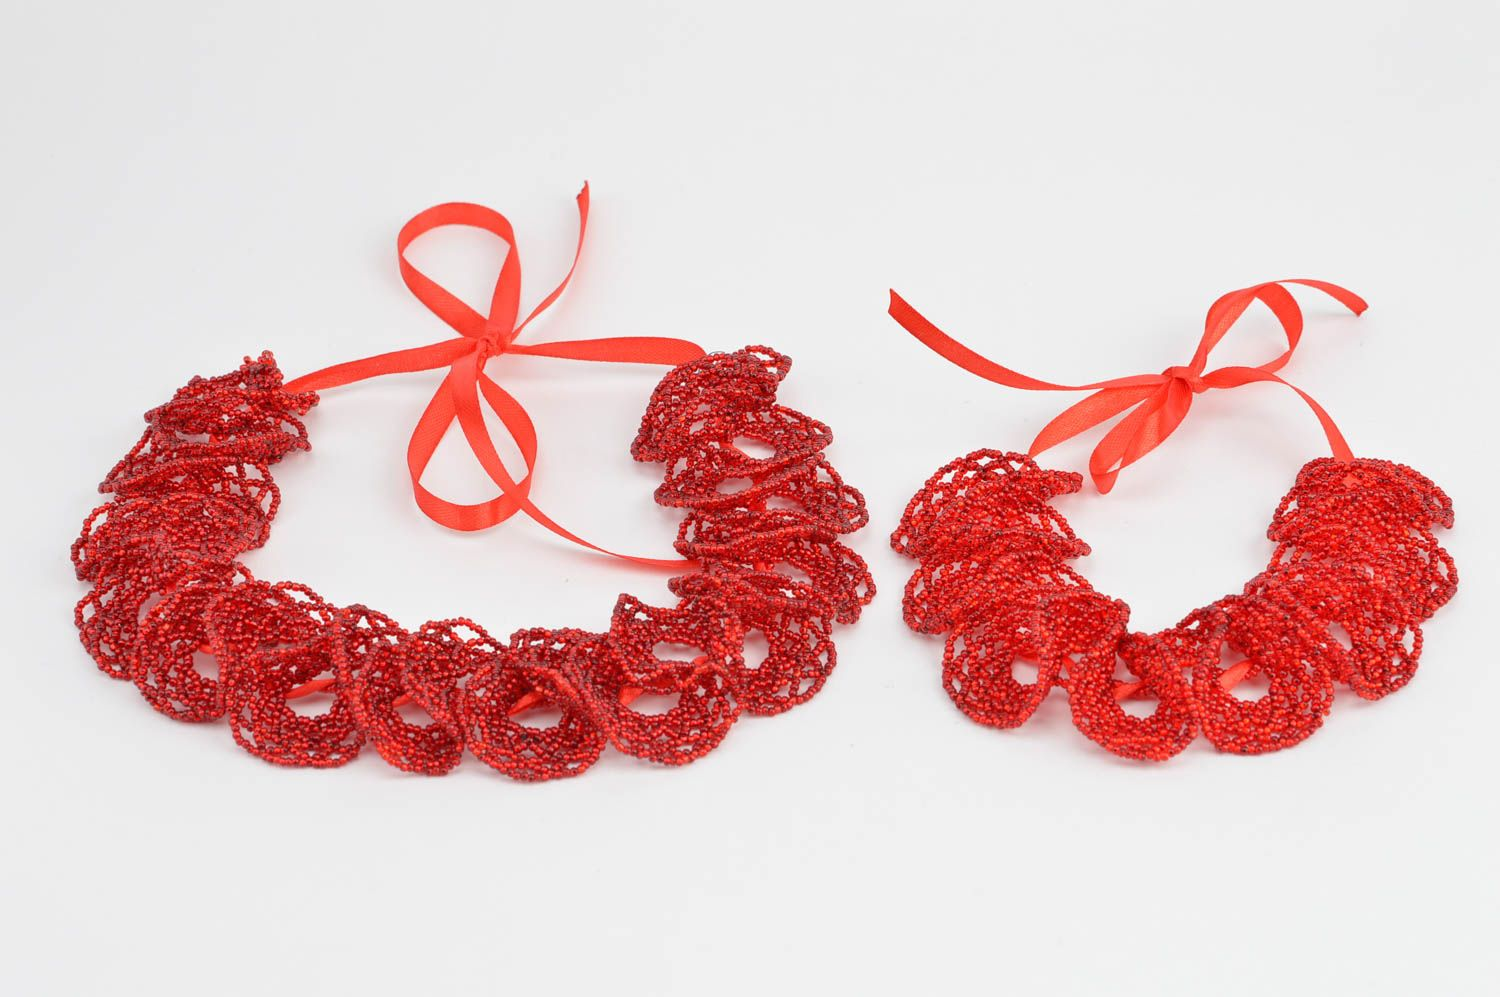 Set of handmade red bead woven jewelry 2 items wrist bracelet and necklace photo 2